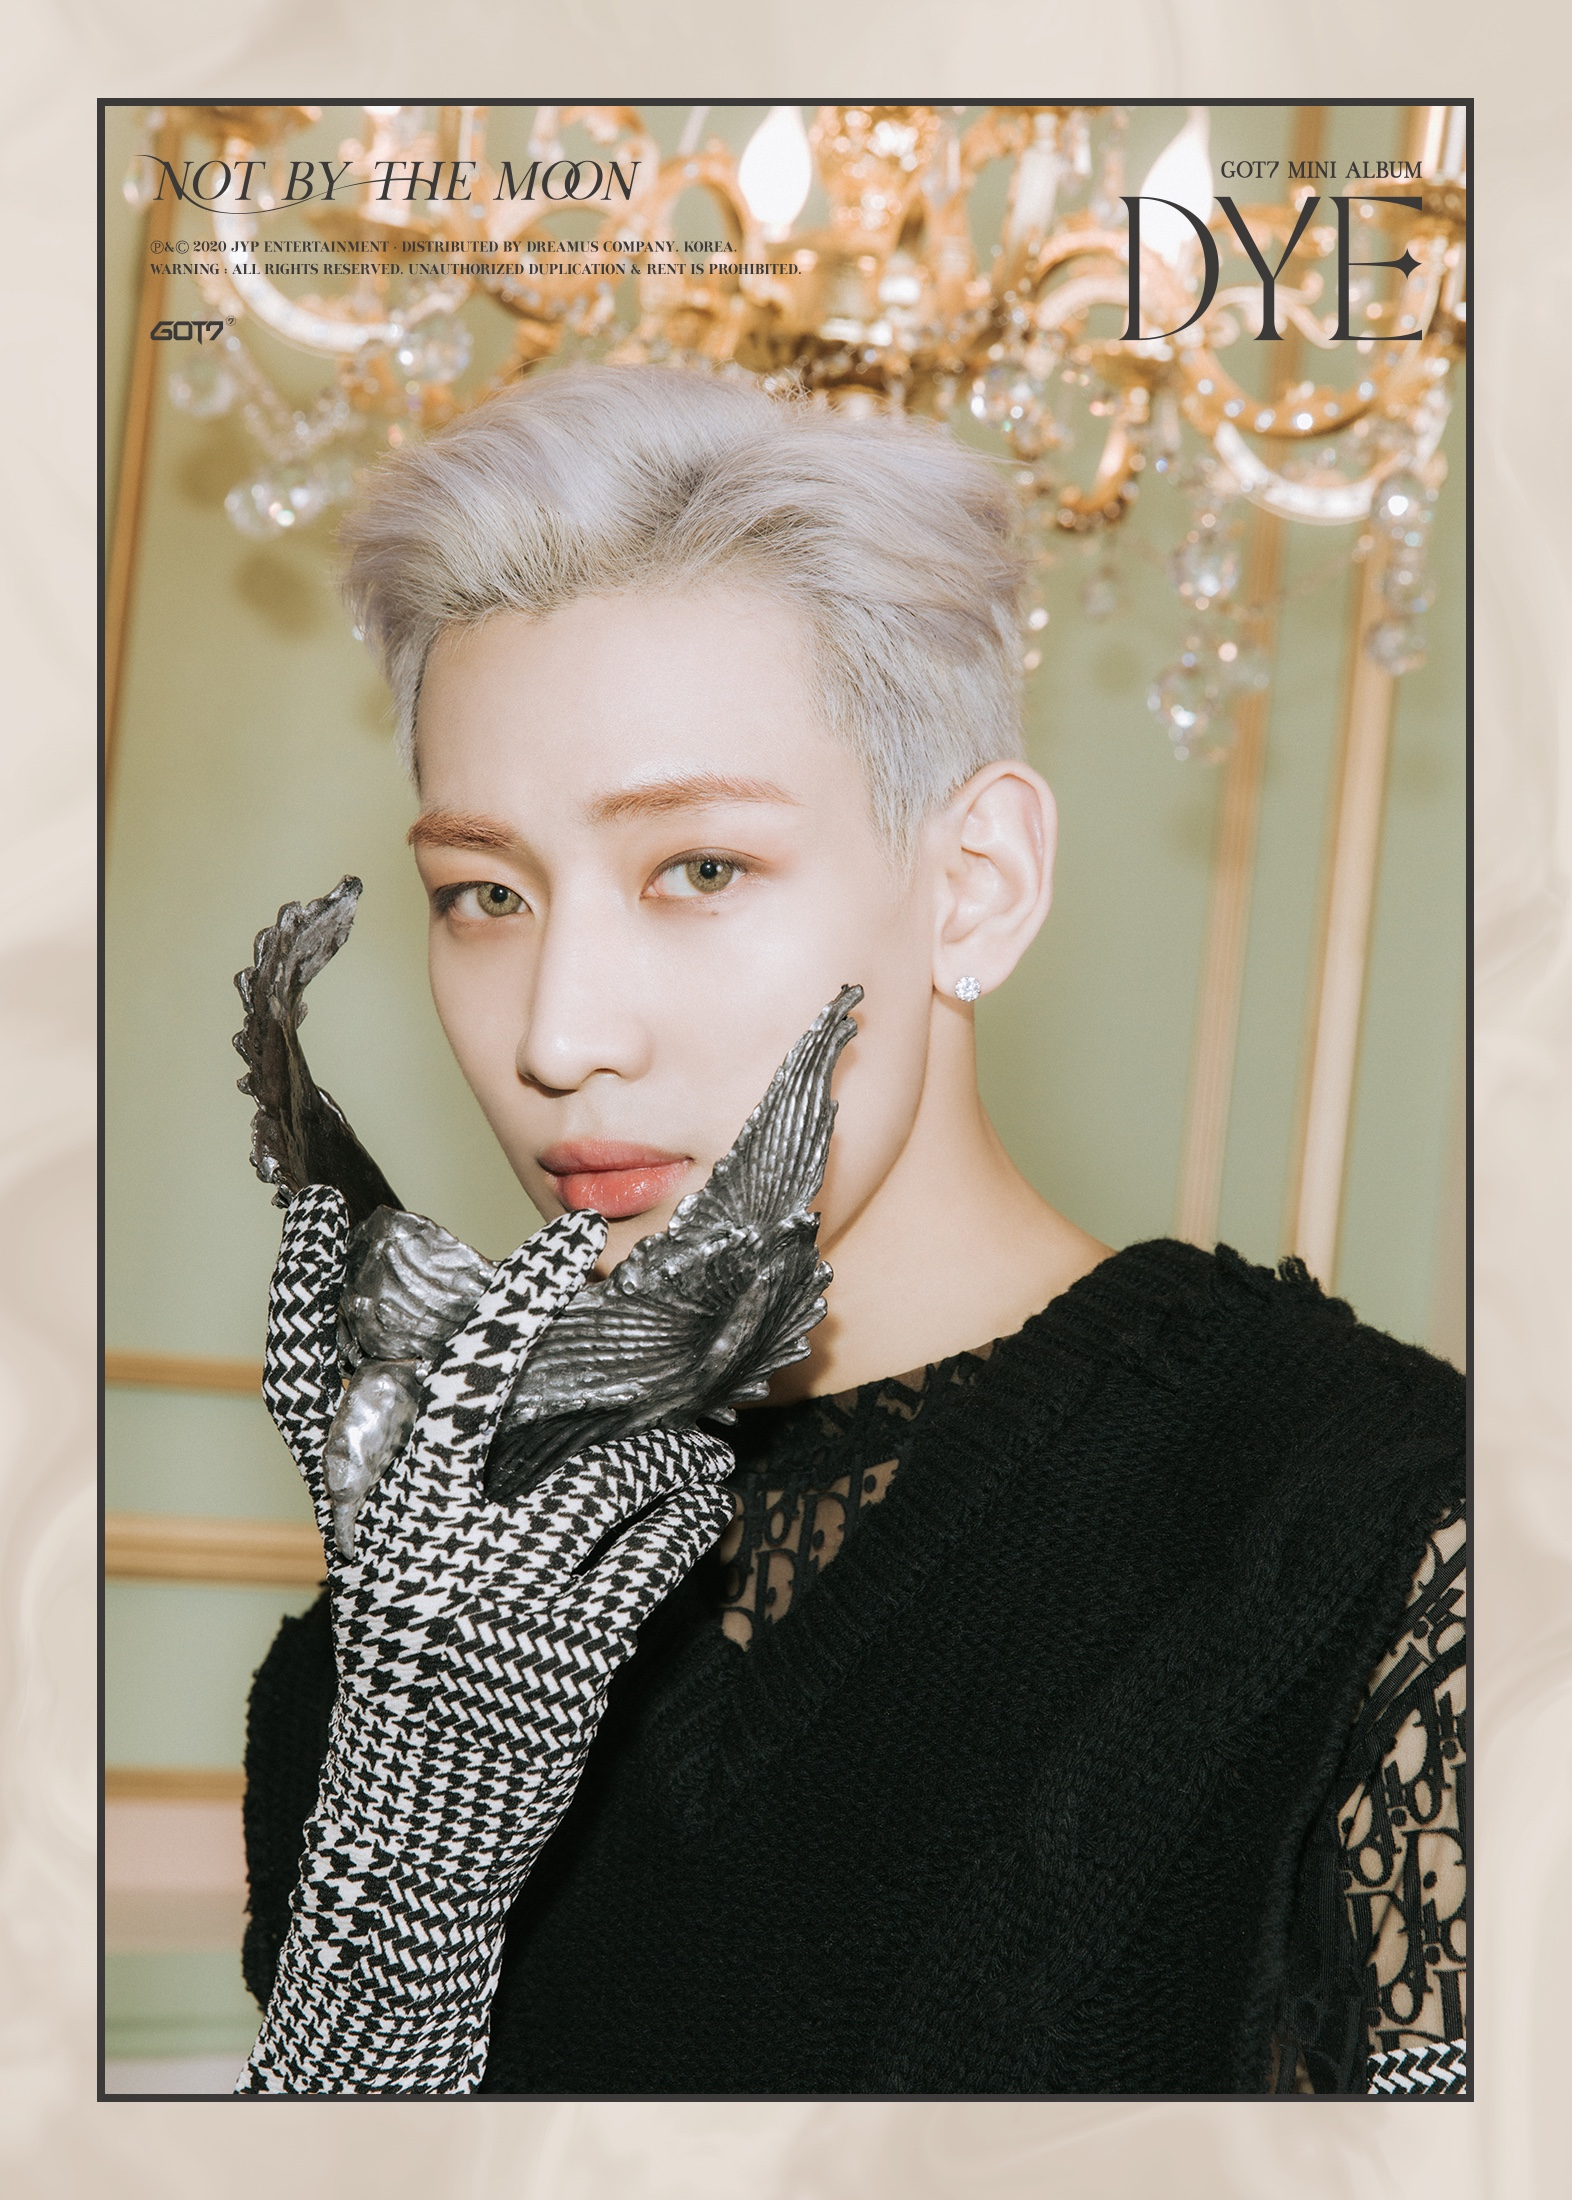 Bambam 2nd teaser image for DYE comeback